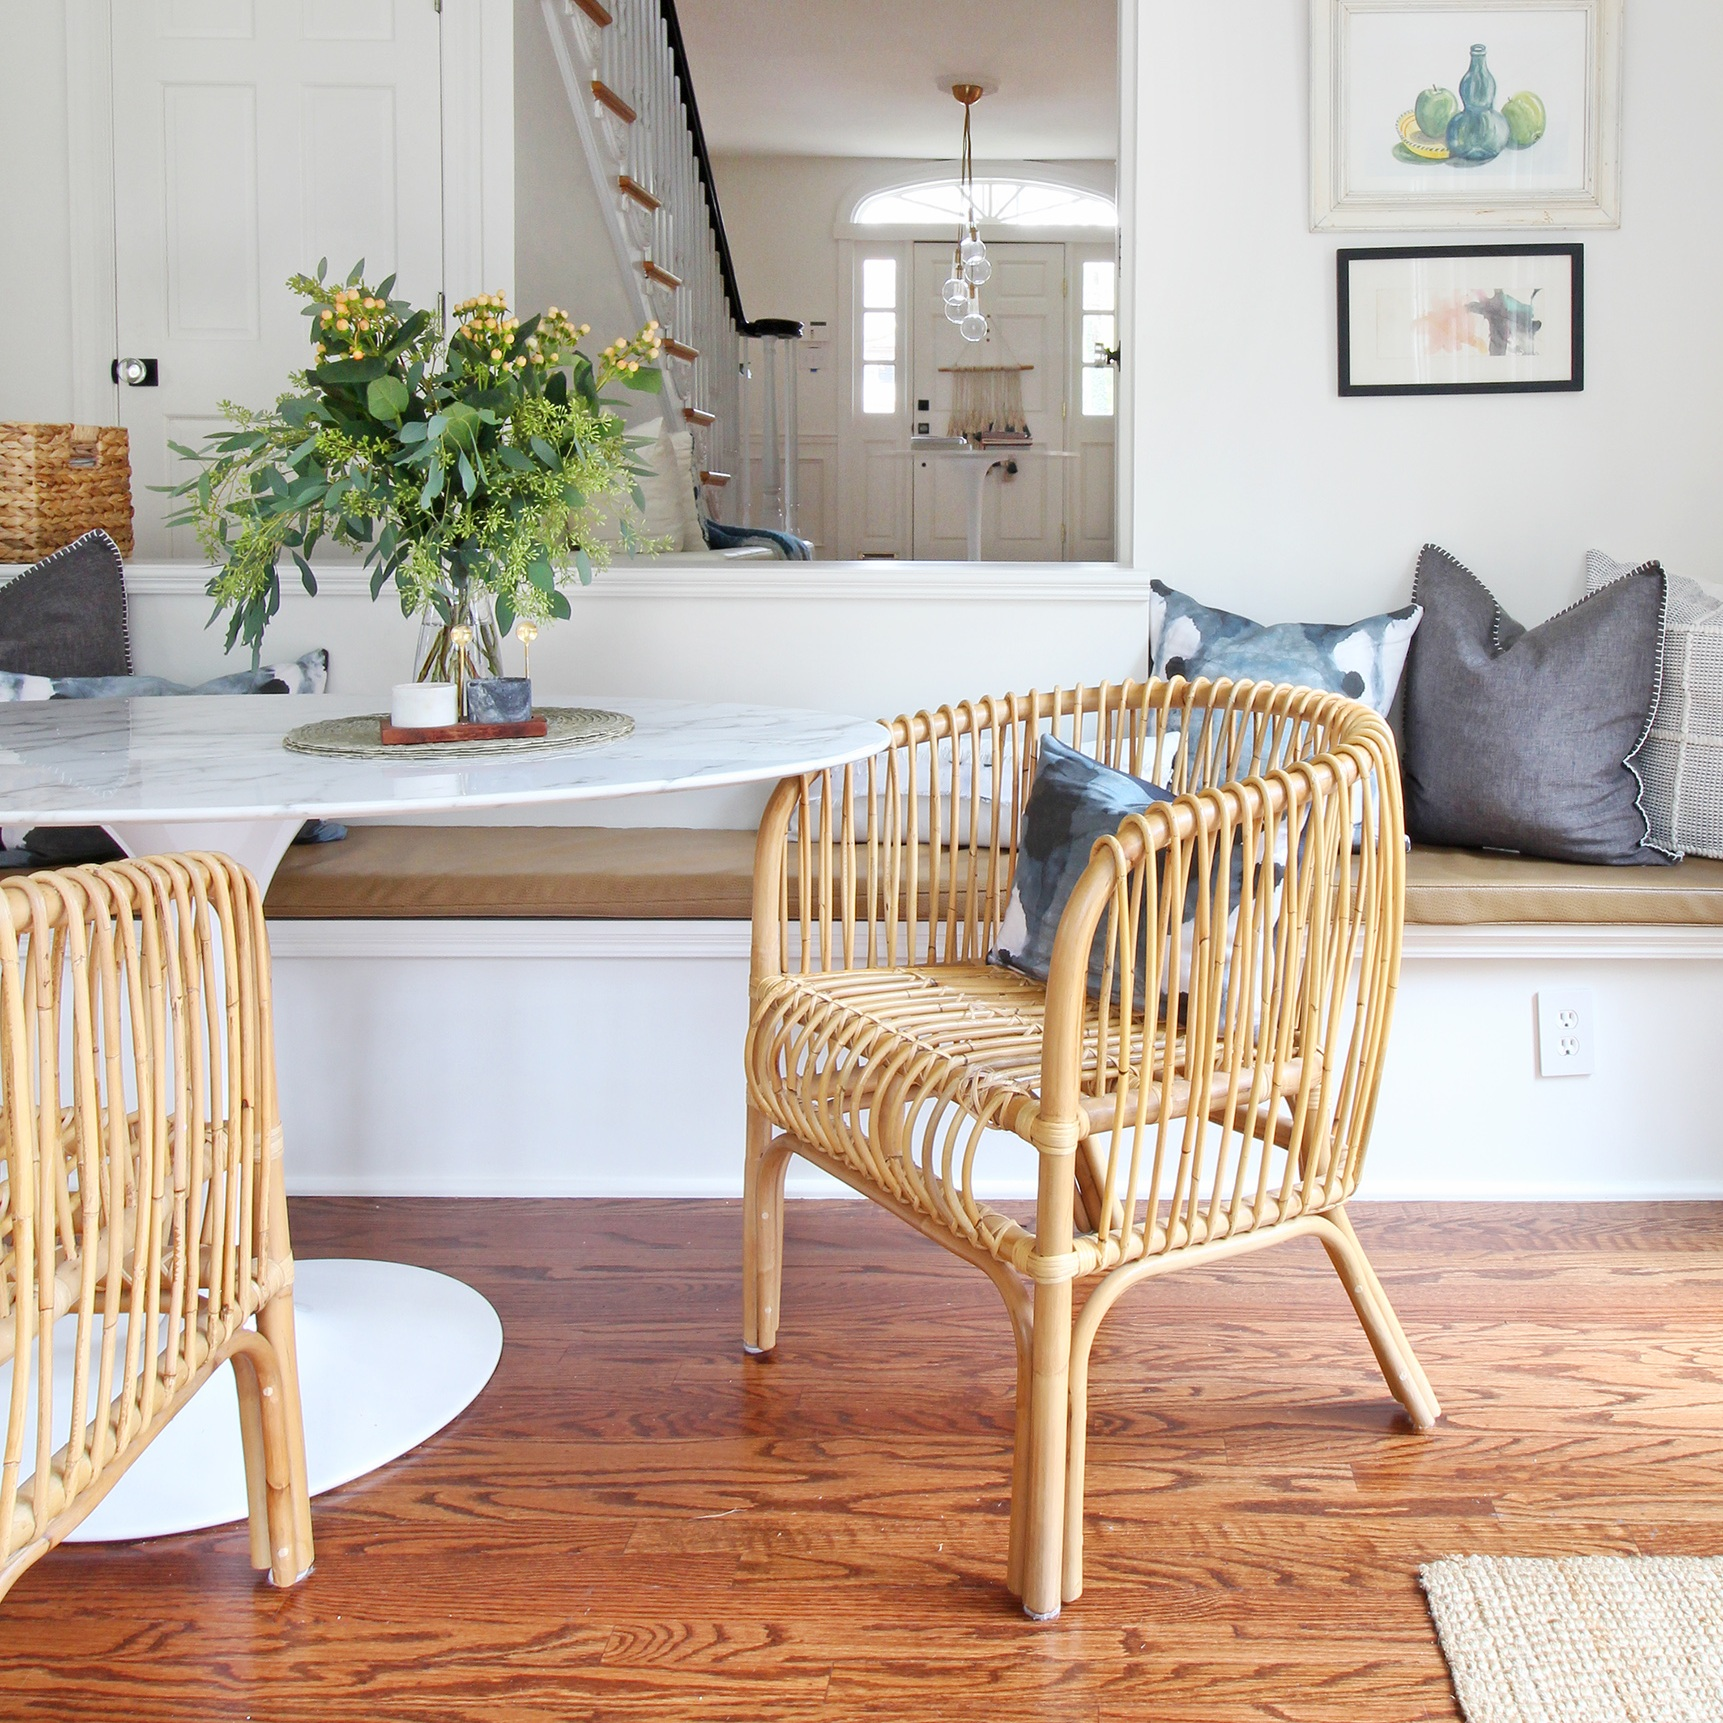 How to Shoot Interiors - the online course. Learn how to take better photos of your clients' homes or your own with a DSLR!